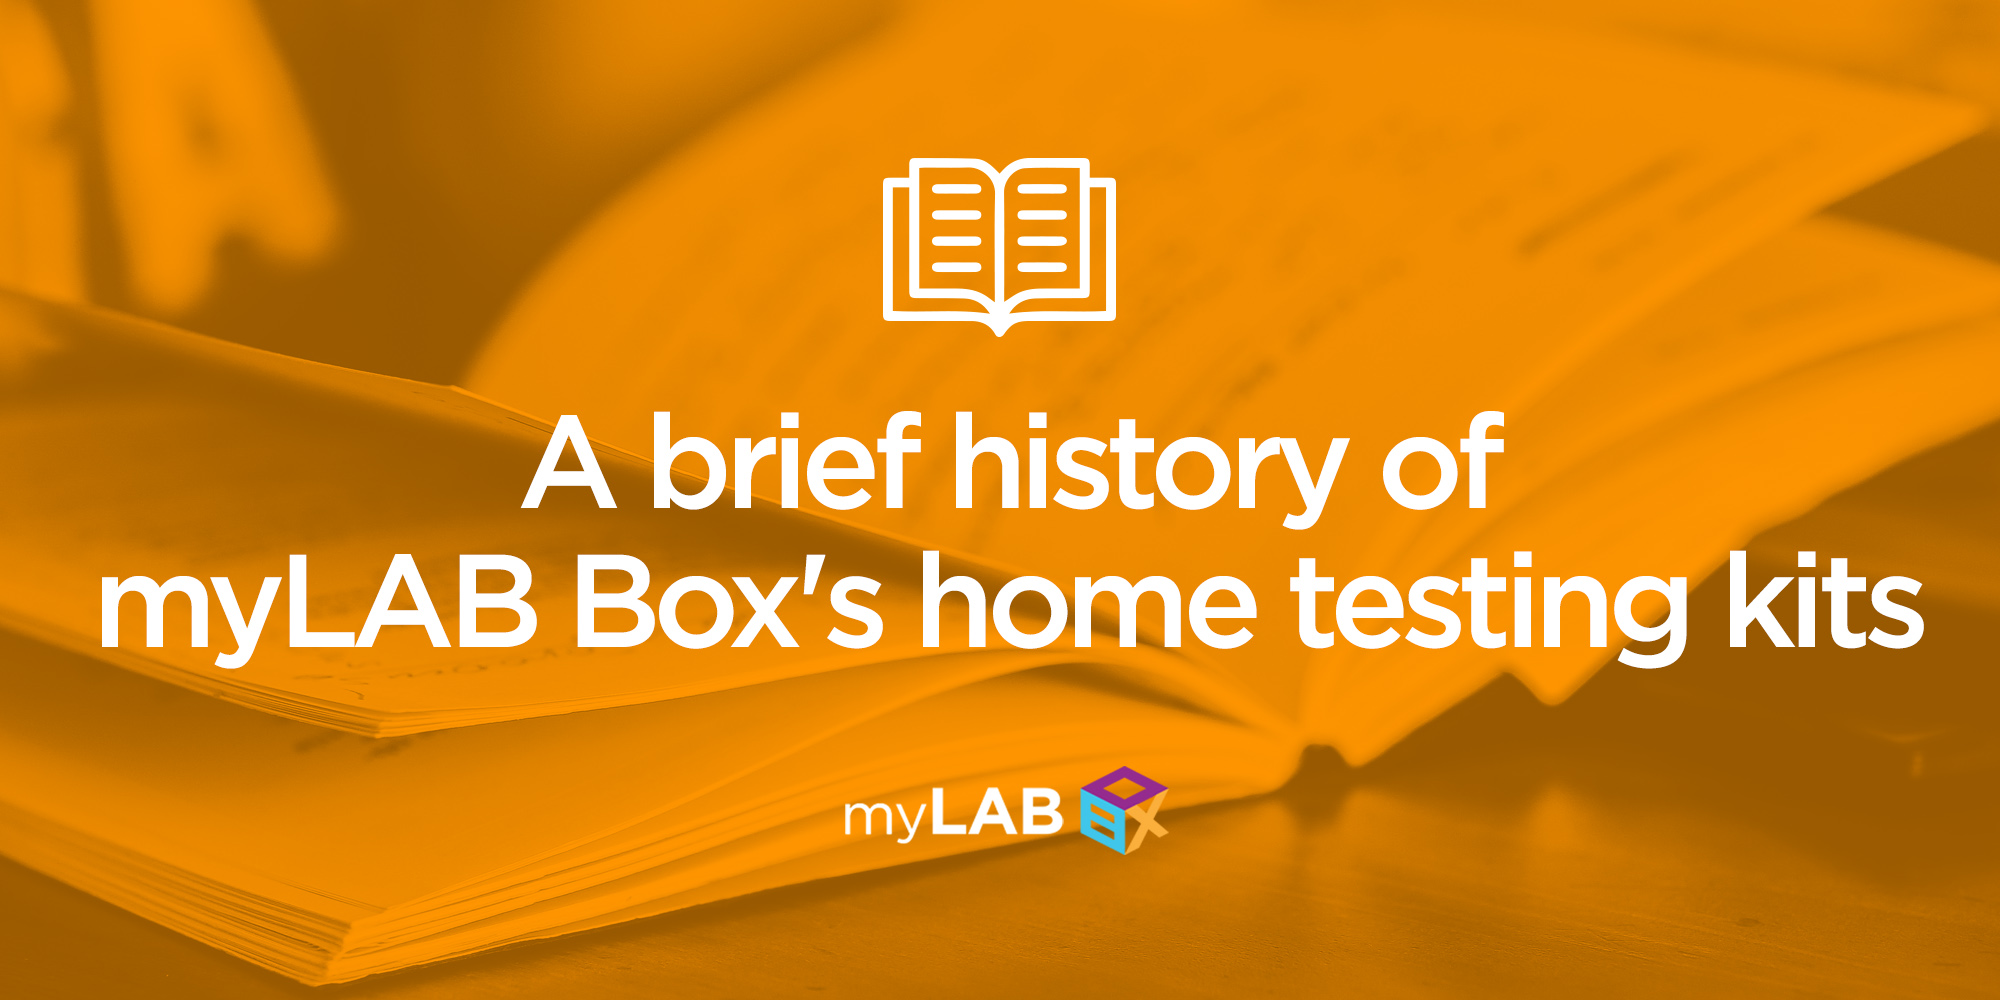 A brief history of myLAB Box's home testing kits